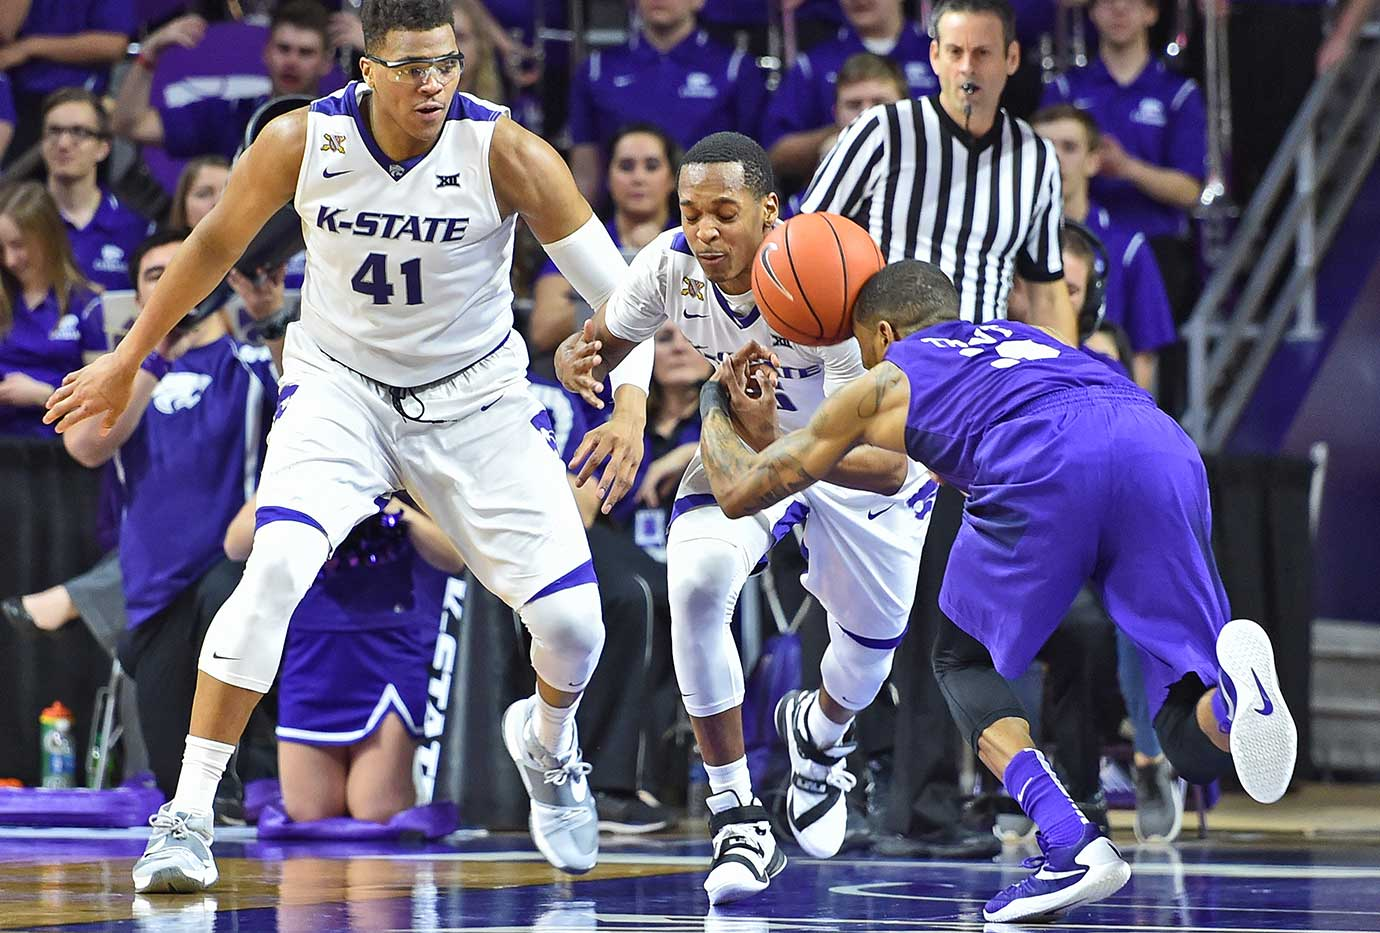 Guard Barry Brown of Kansas State goes after a loose ball against Malique Trent of the TCU Horned Frogs.